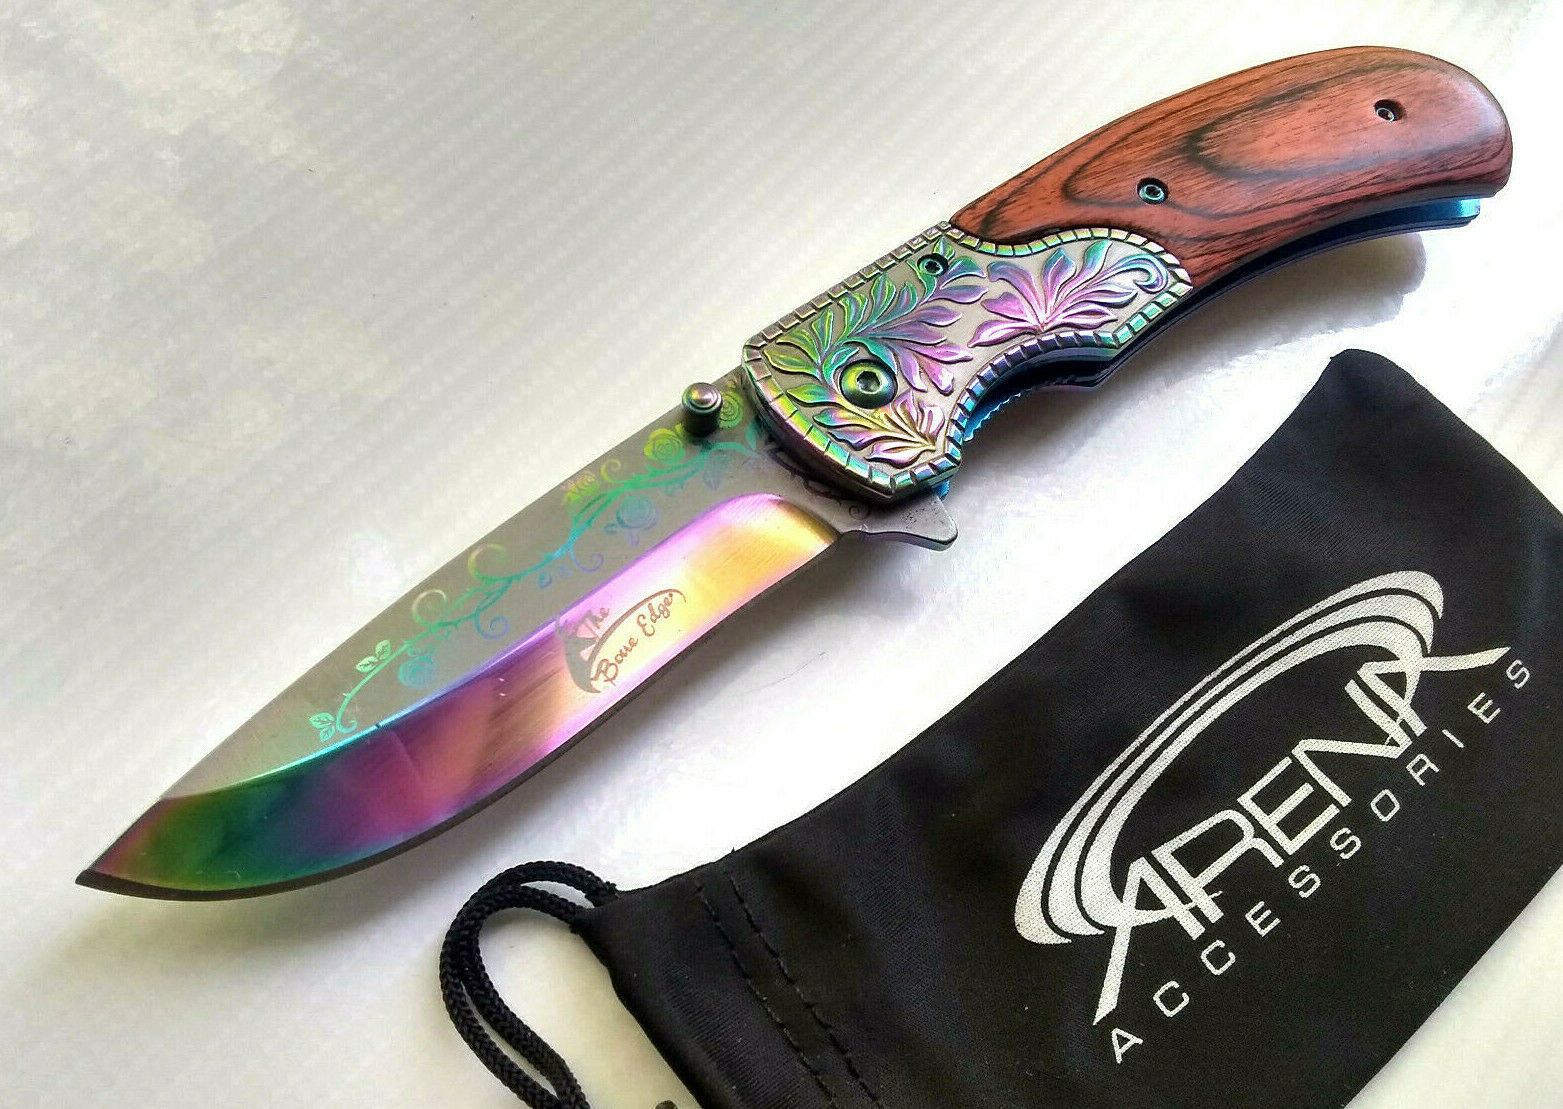 The Bone Edge Gentleman's Rainbow Ti Wood Handle Spring Assisted Open Pocket Knife with Ornate Scrollwork